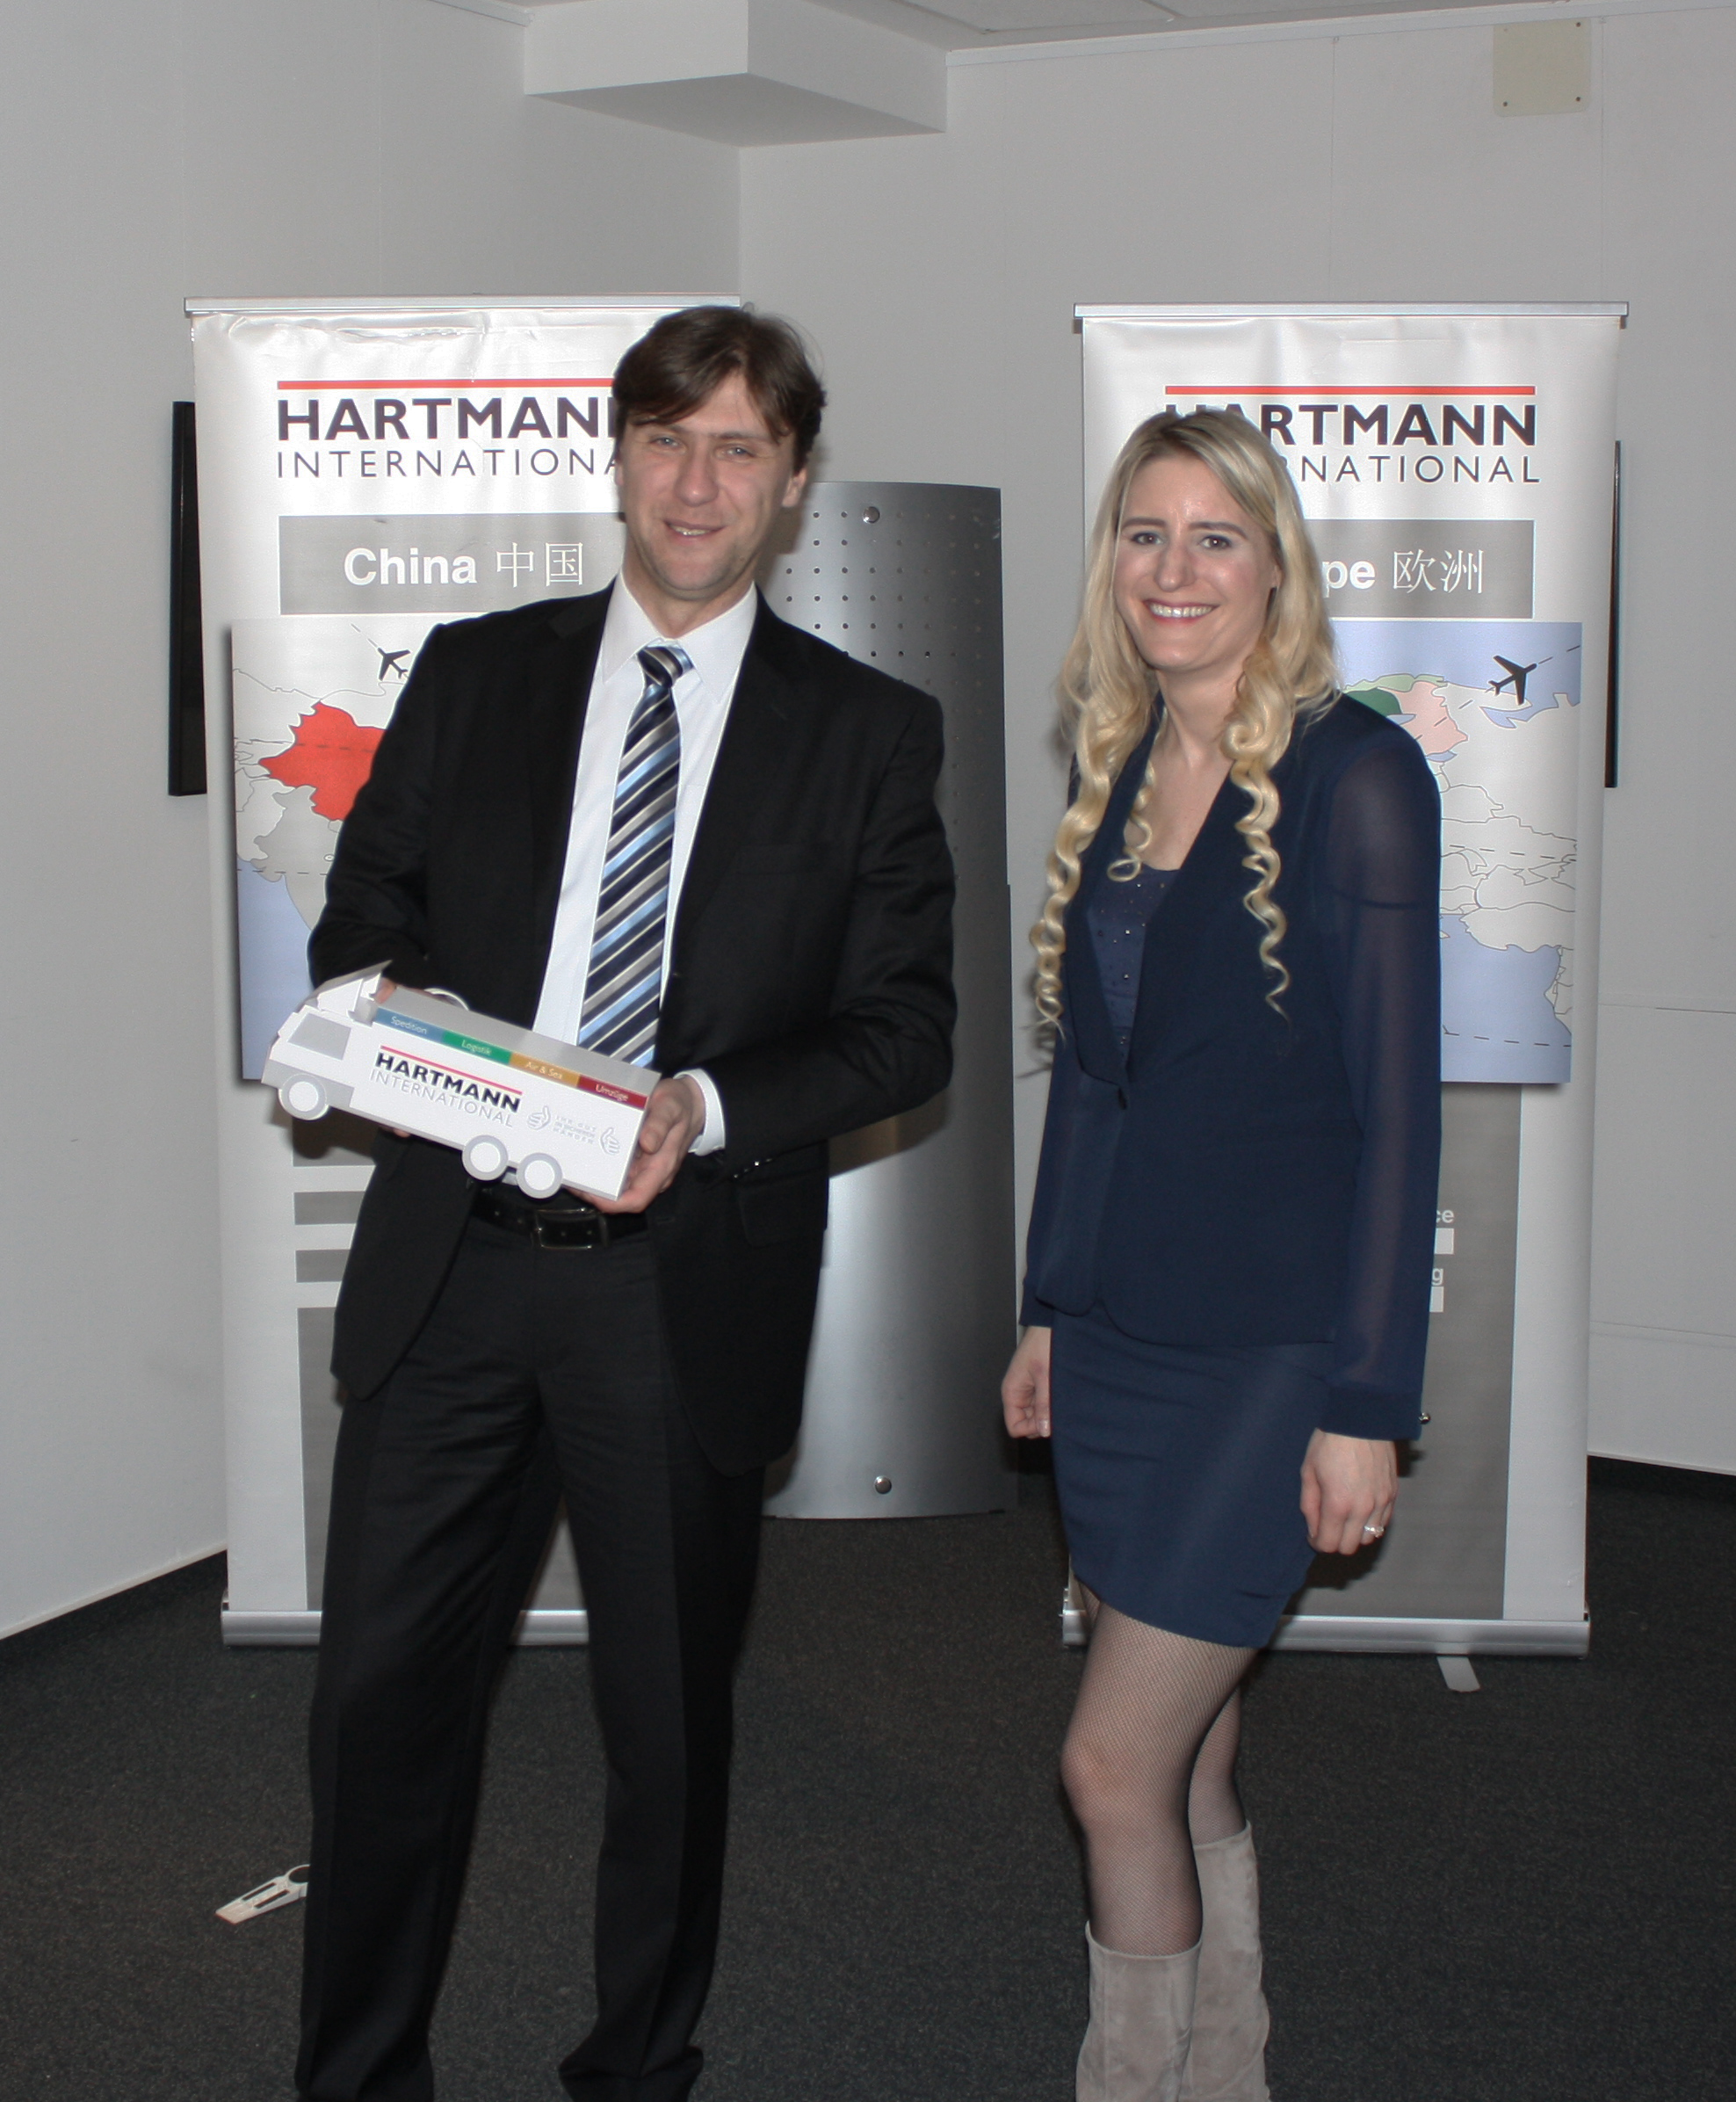 Bernhard Morawetz (IHK Ostwestfalen) und Kristina Garbe (Air & Sea bei Hartmann International)